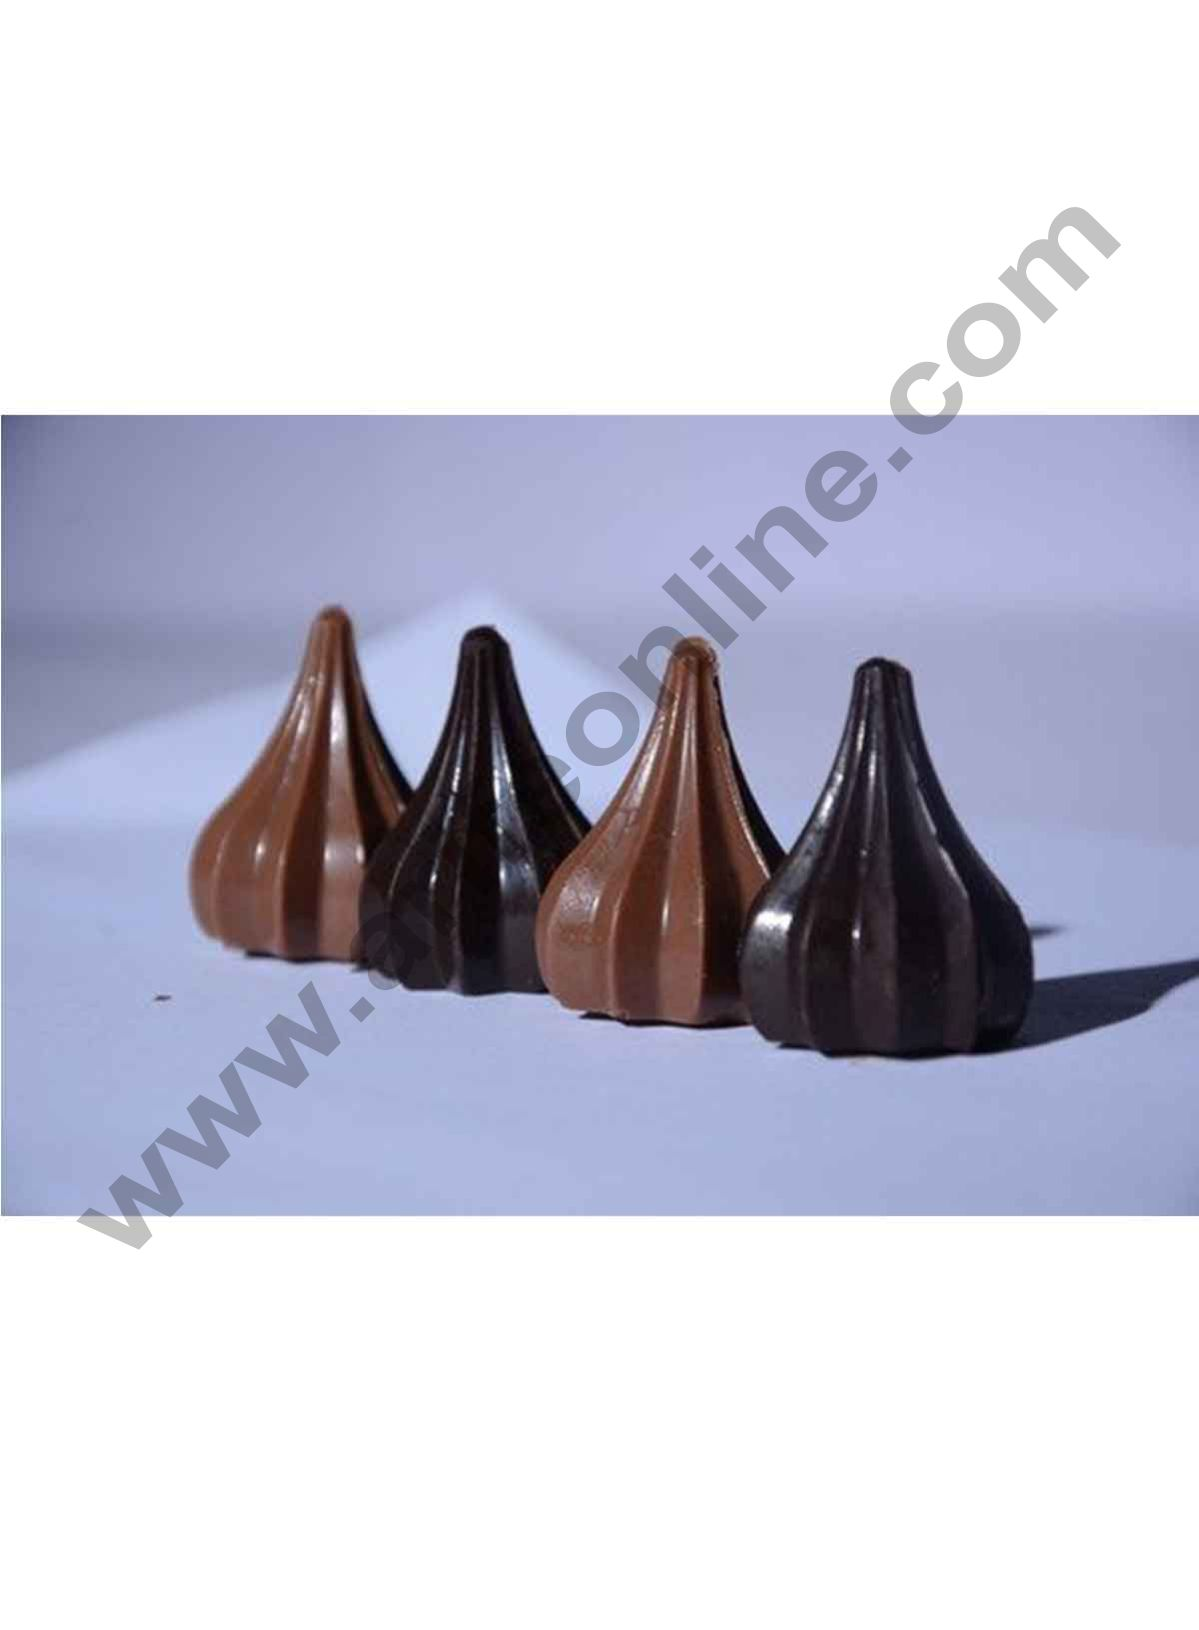 Cake Decor Modak Shape 8 Cavity Chocolate Mould, Silicone Molds for Chocolate, Chocolate Silicone Moulds, Silicon Brown Chocolate Moulds for Ganesh Chaturti Festivals